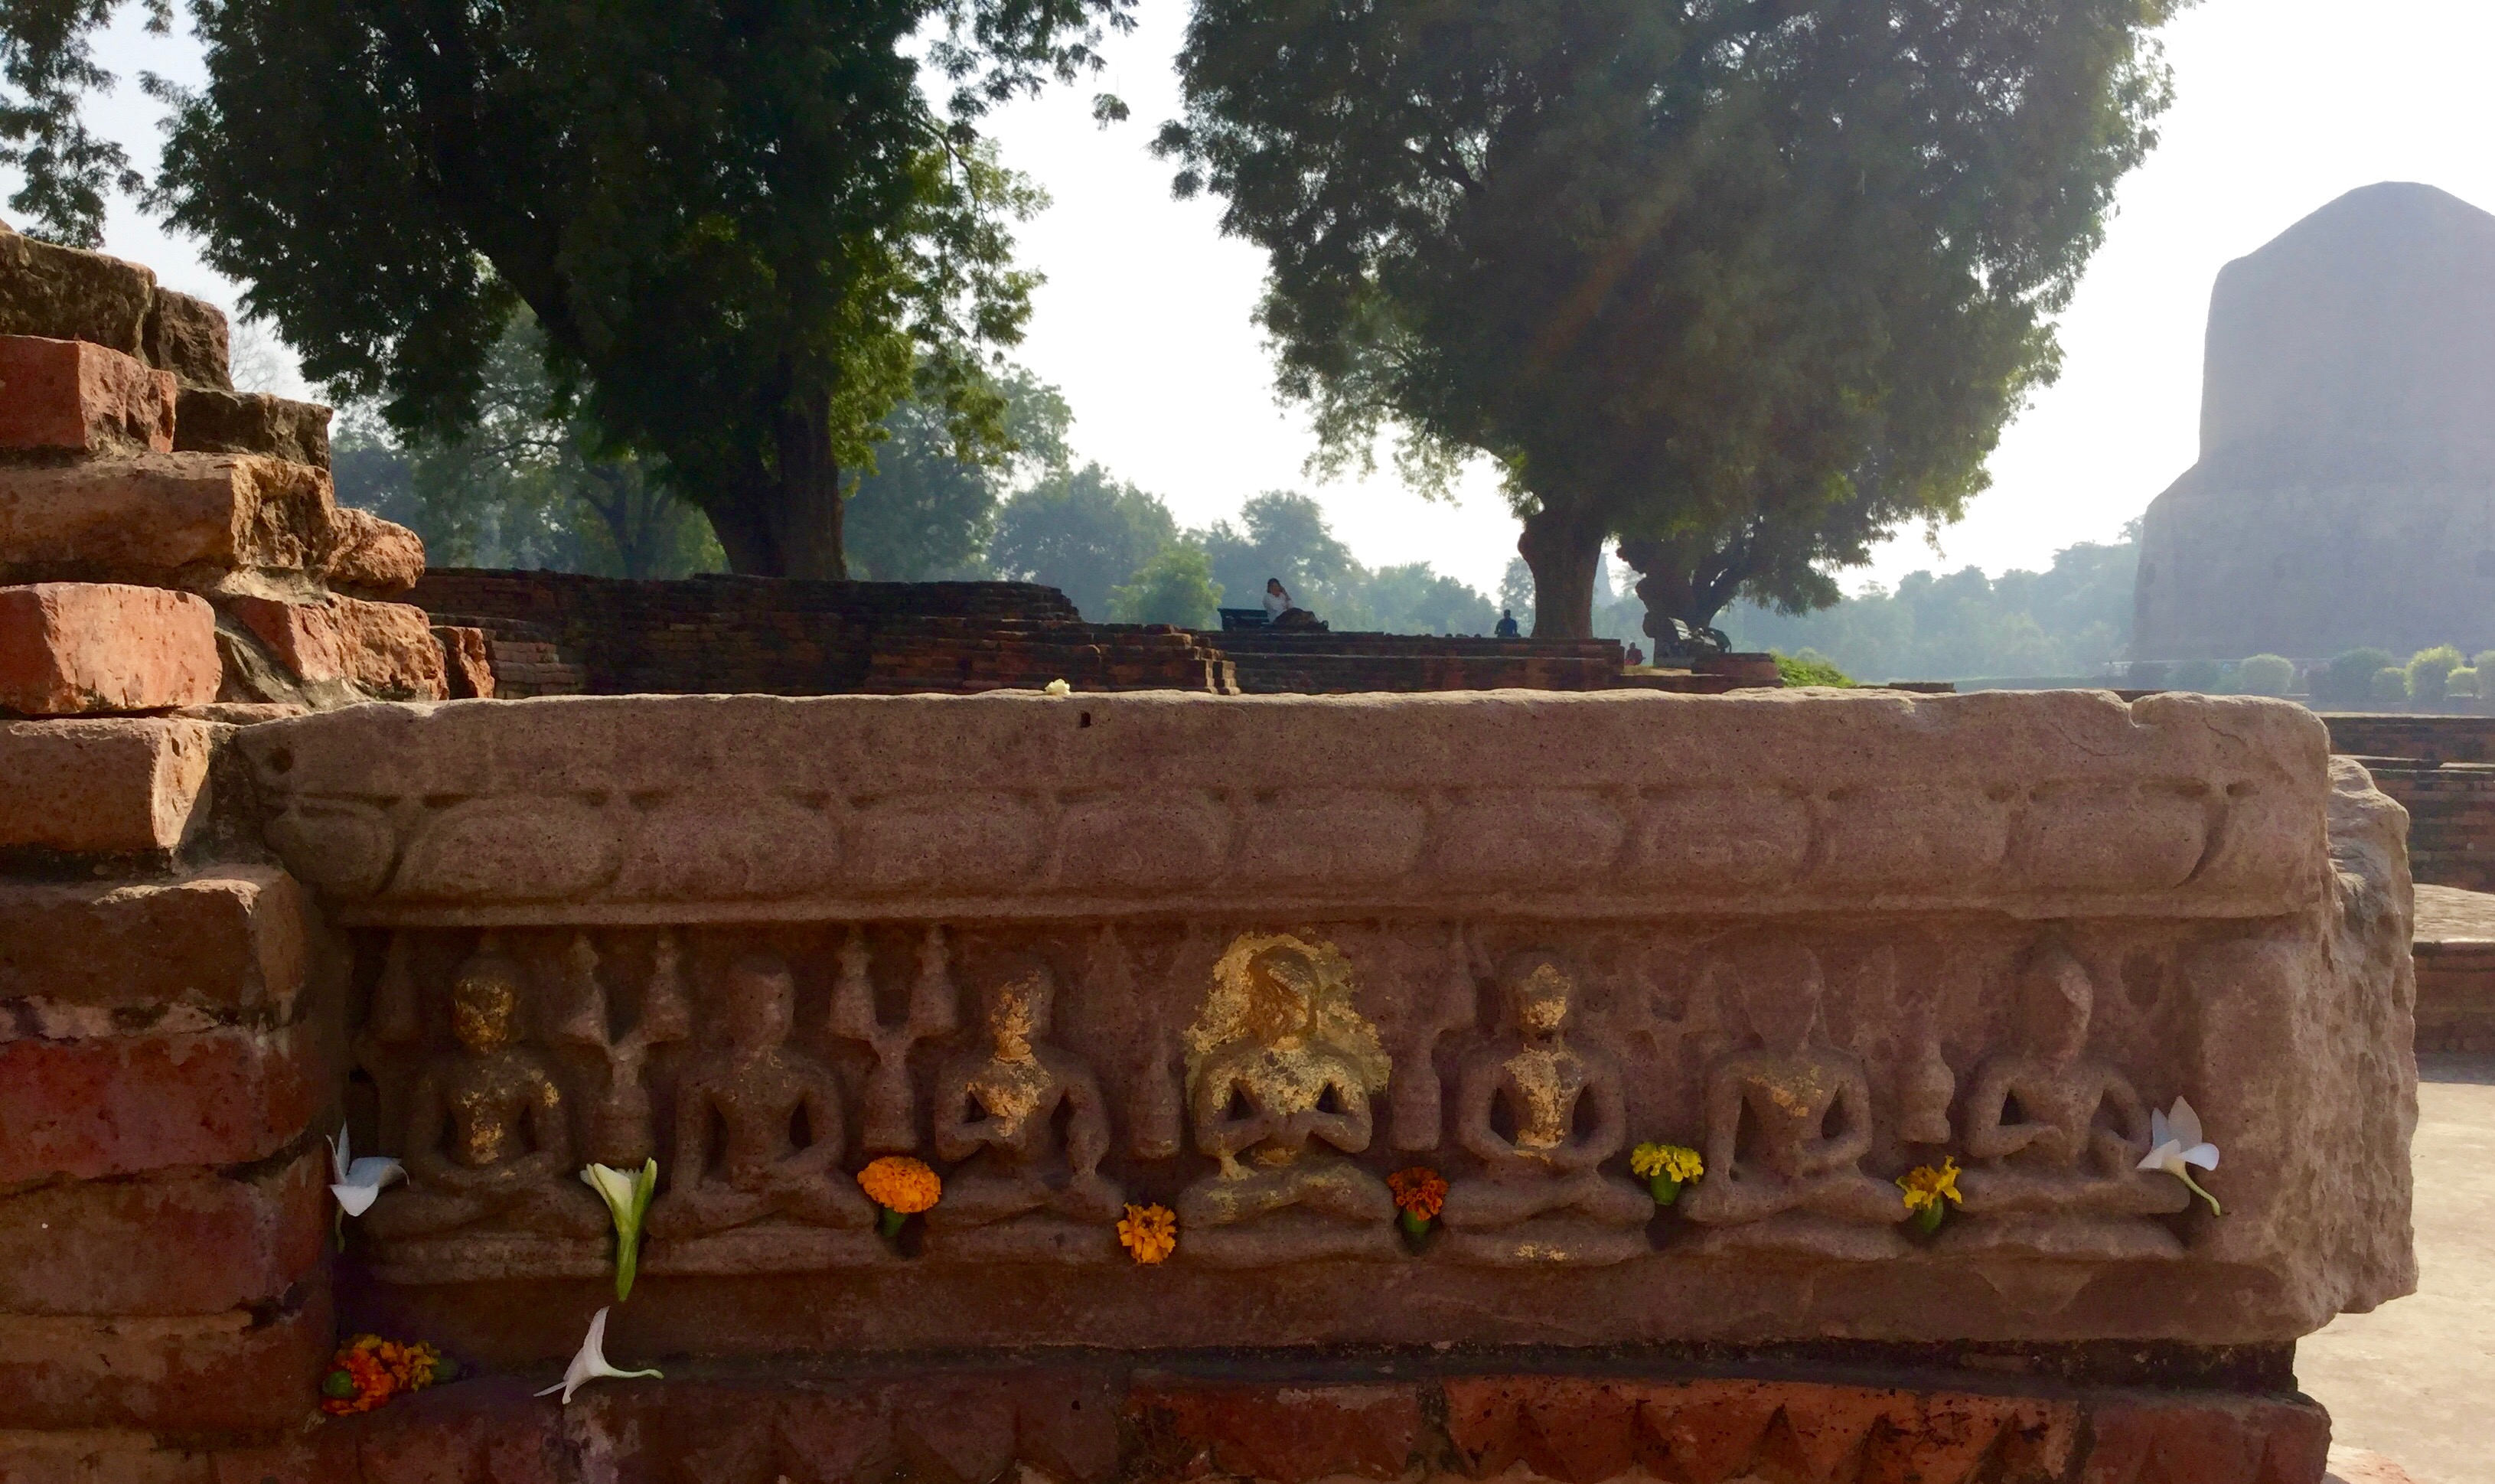 Ruins of monasteries, temples and stupas at Sarnath, India where theBuddha first turned the Wheel of Dharma. (Photo Ven Sarah Thresher)